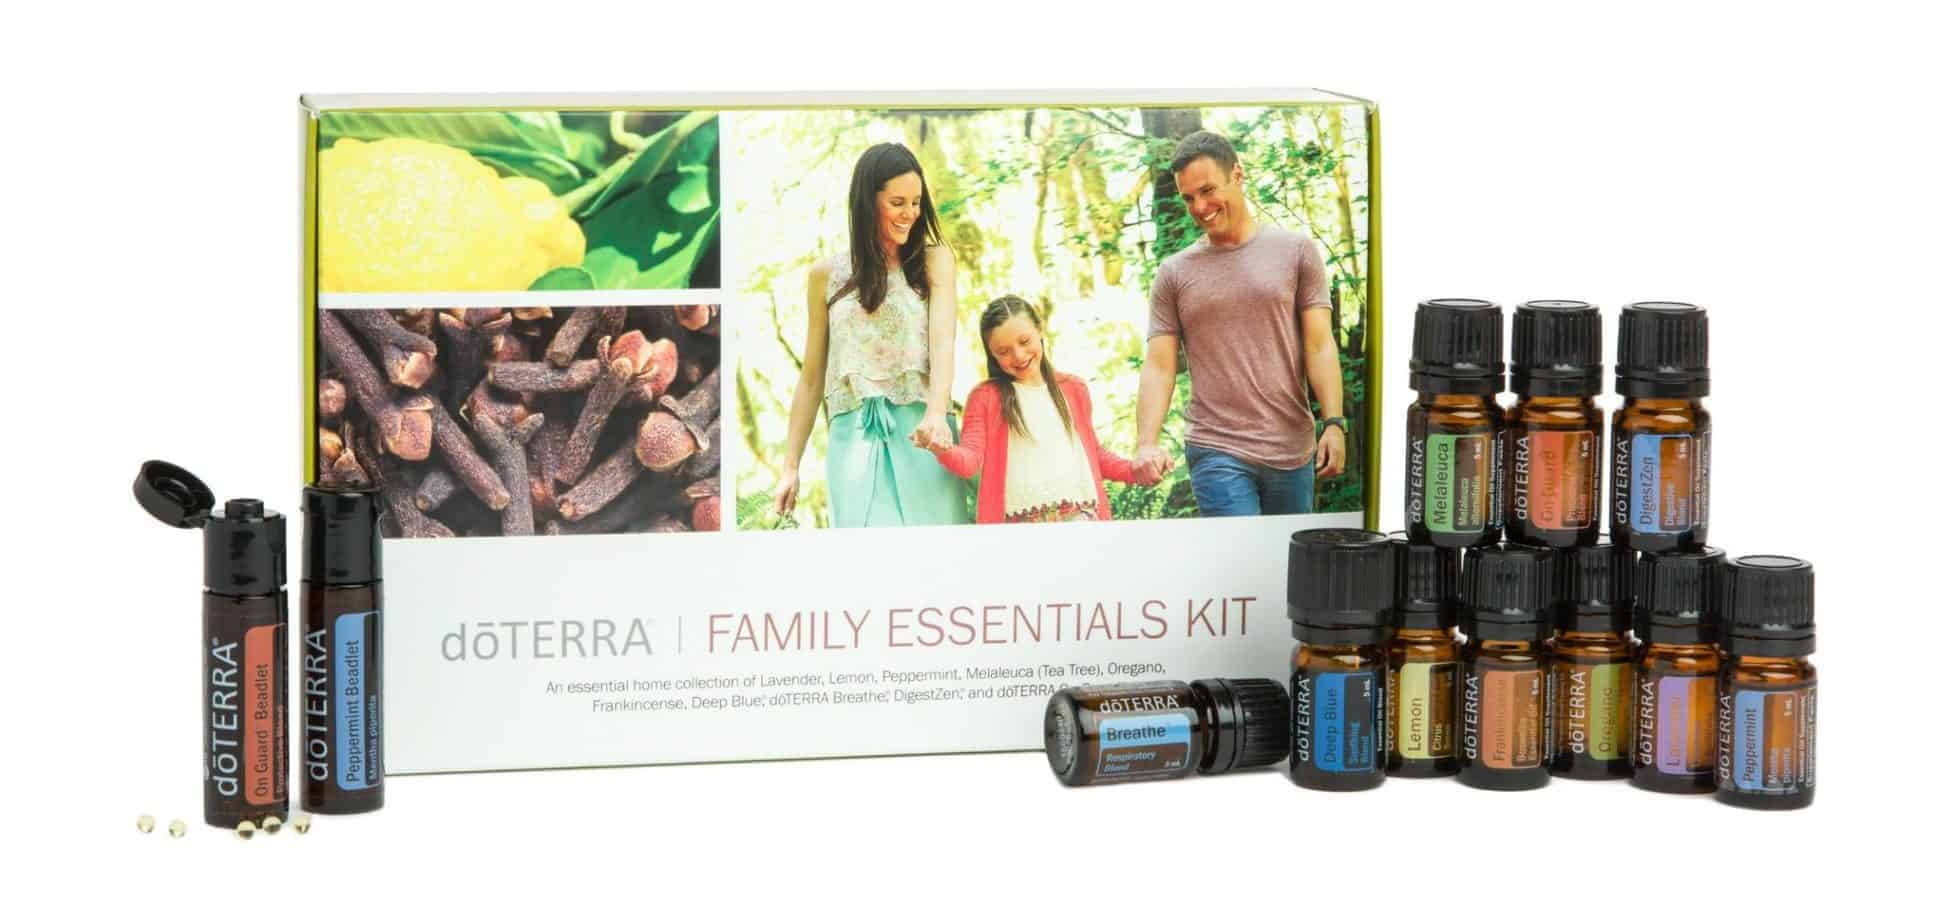 doTerra enrolment kits- family essentials kit